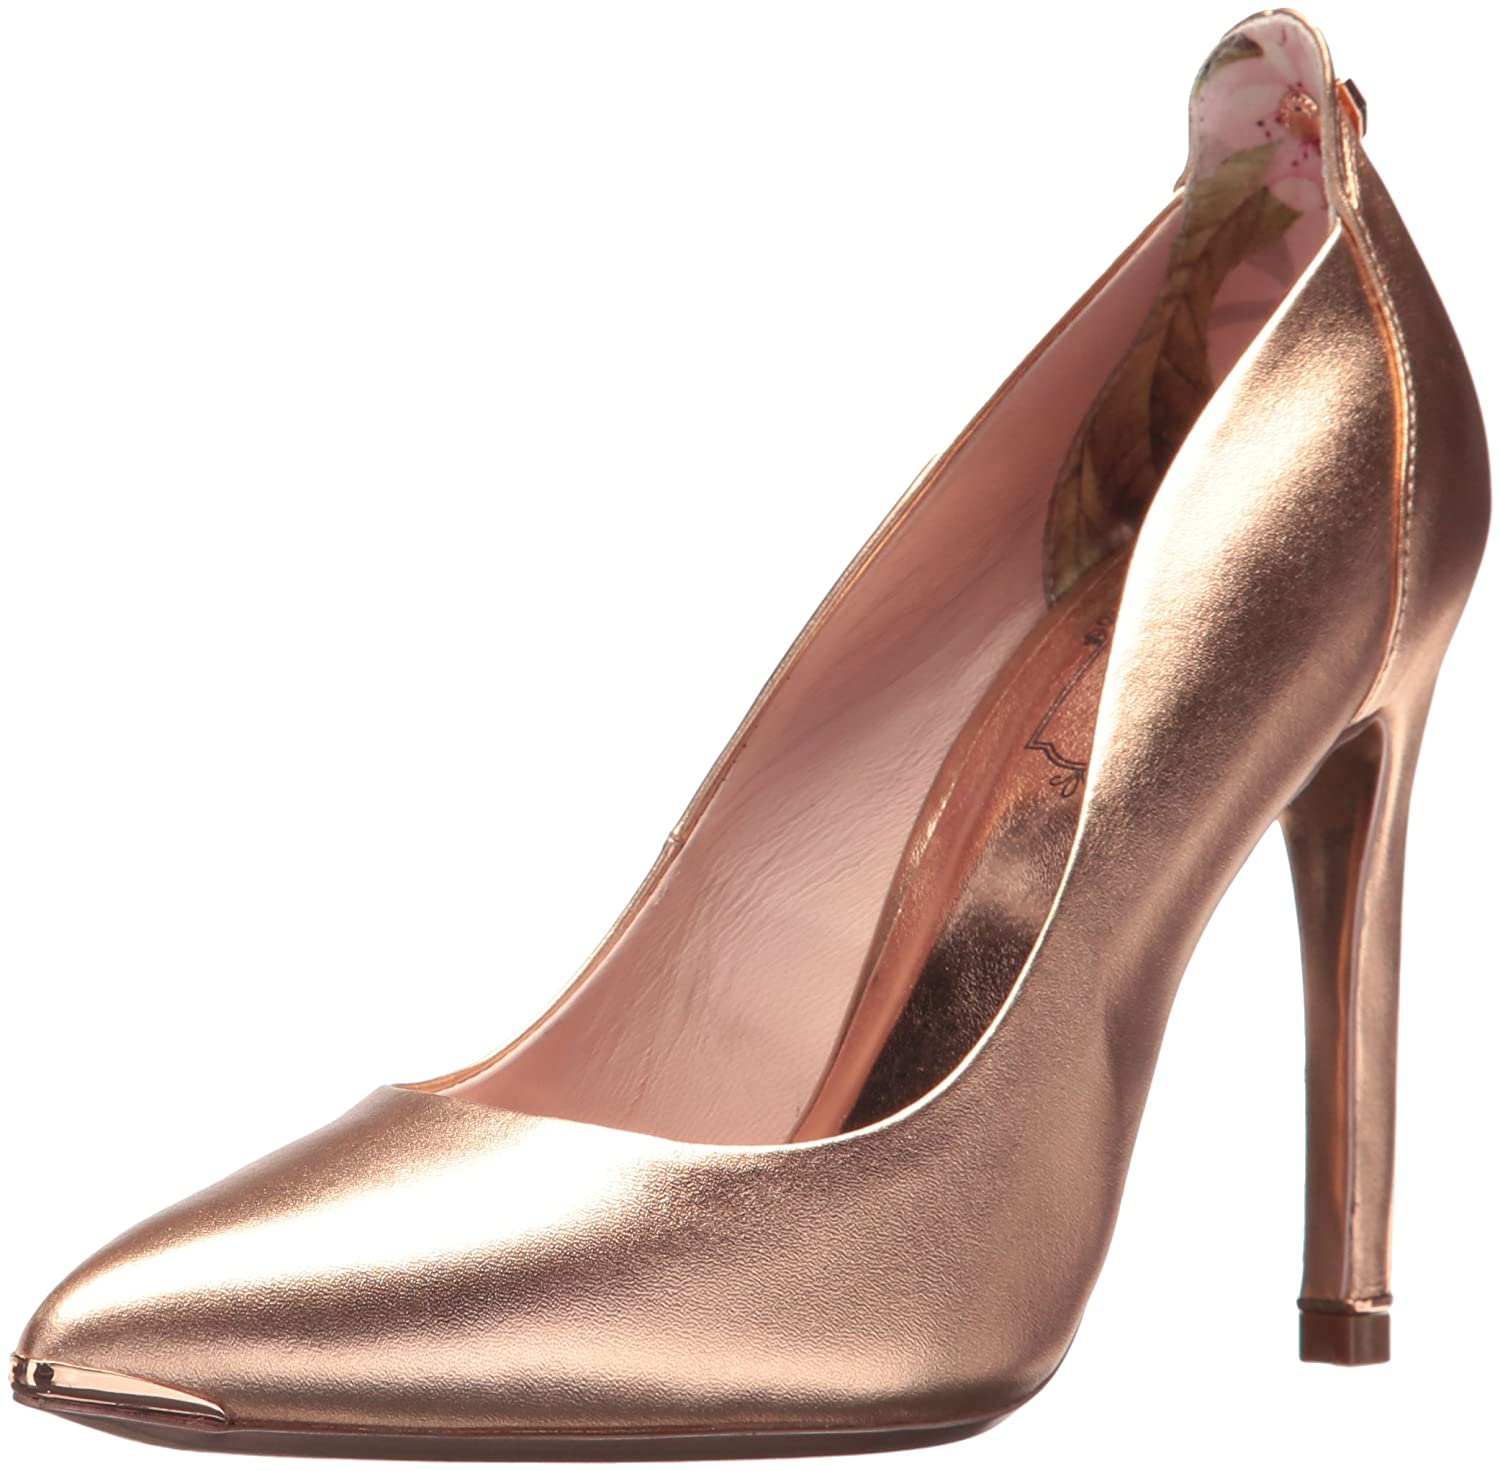 Ted Baker Women's Melisah Pump B071WZ37MM 10.5 B(M) US|Rose Gold